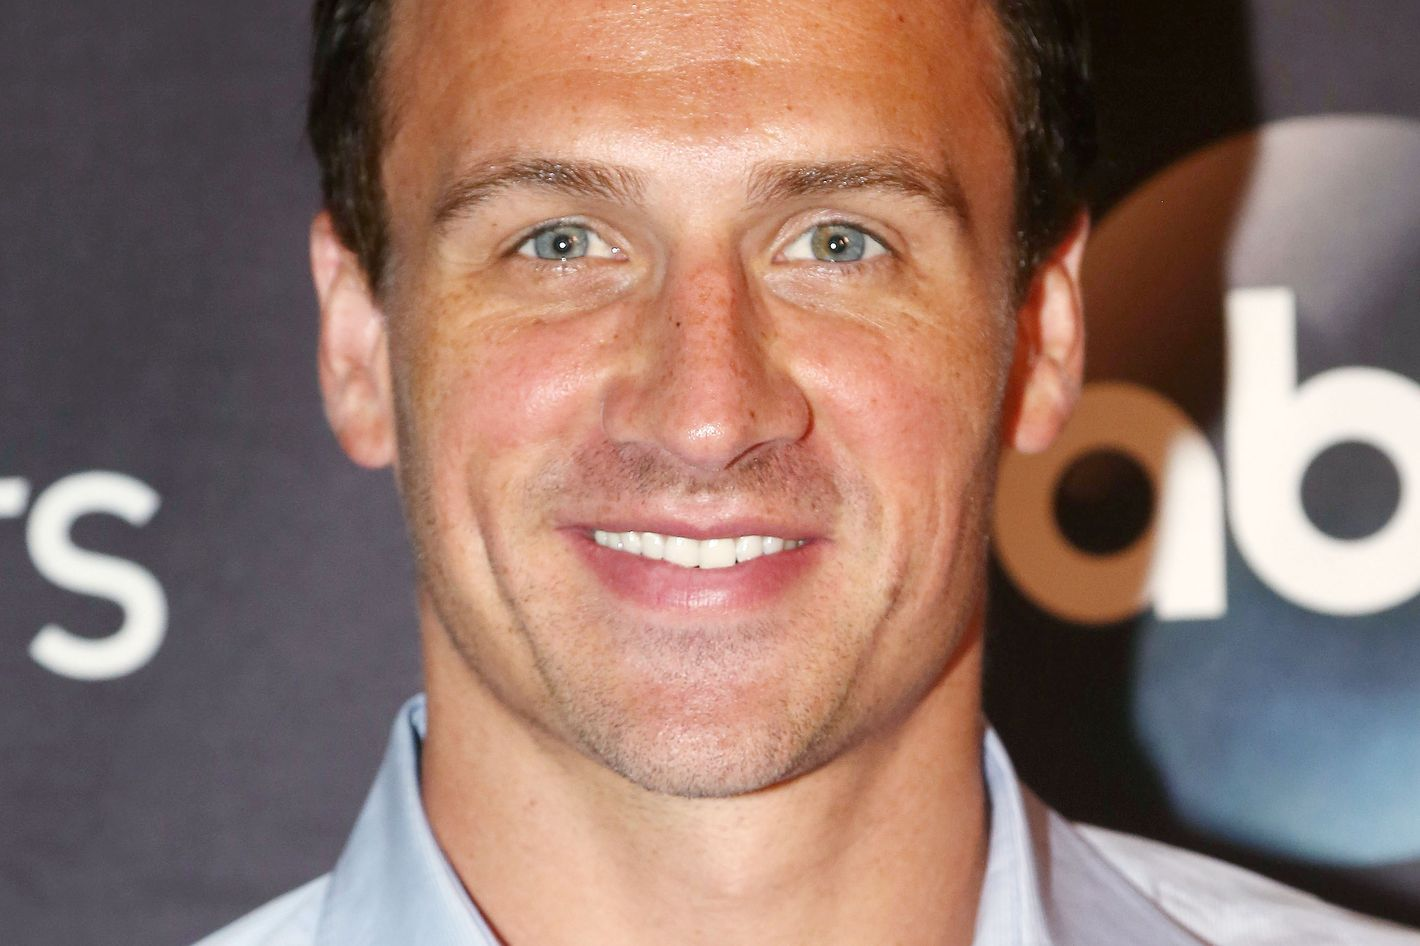 Ryan Lochte Heckled During DWTS Debut